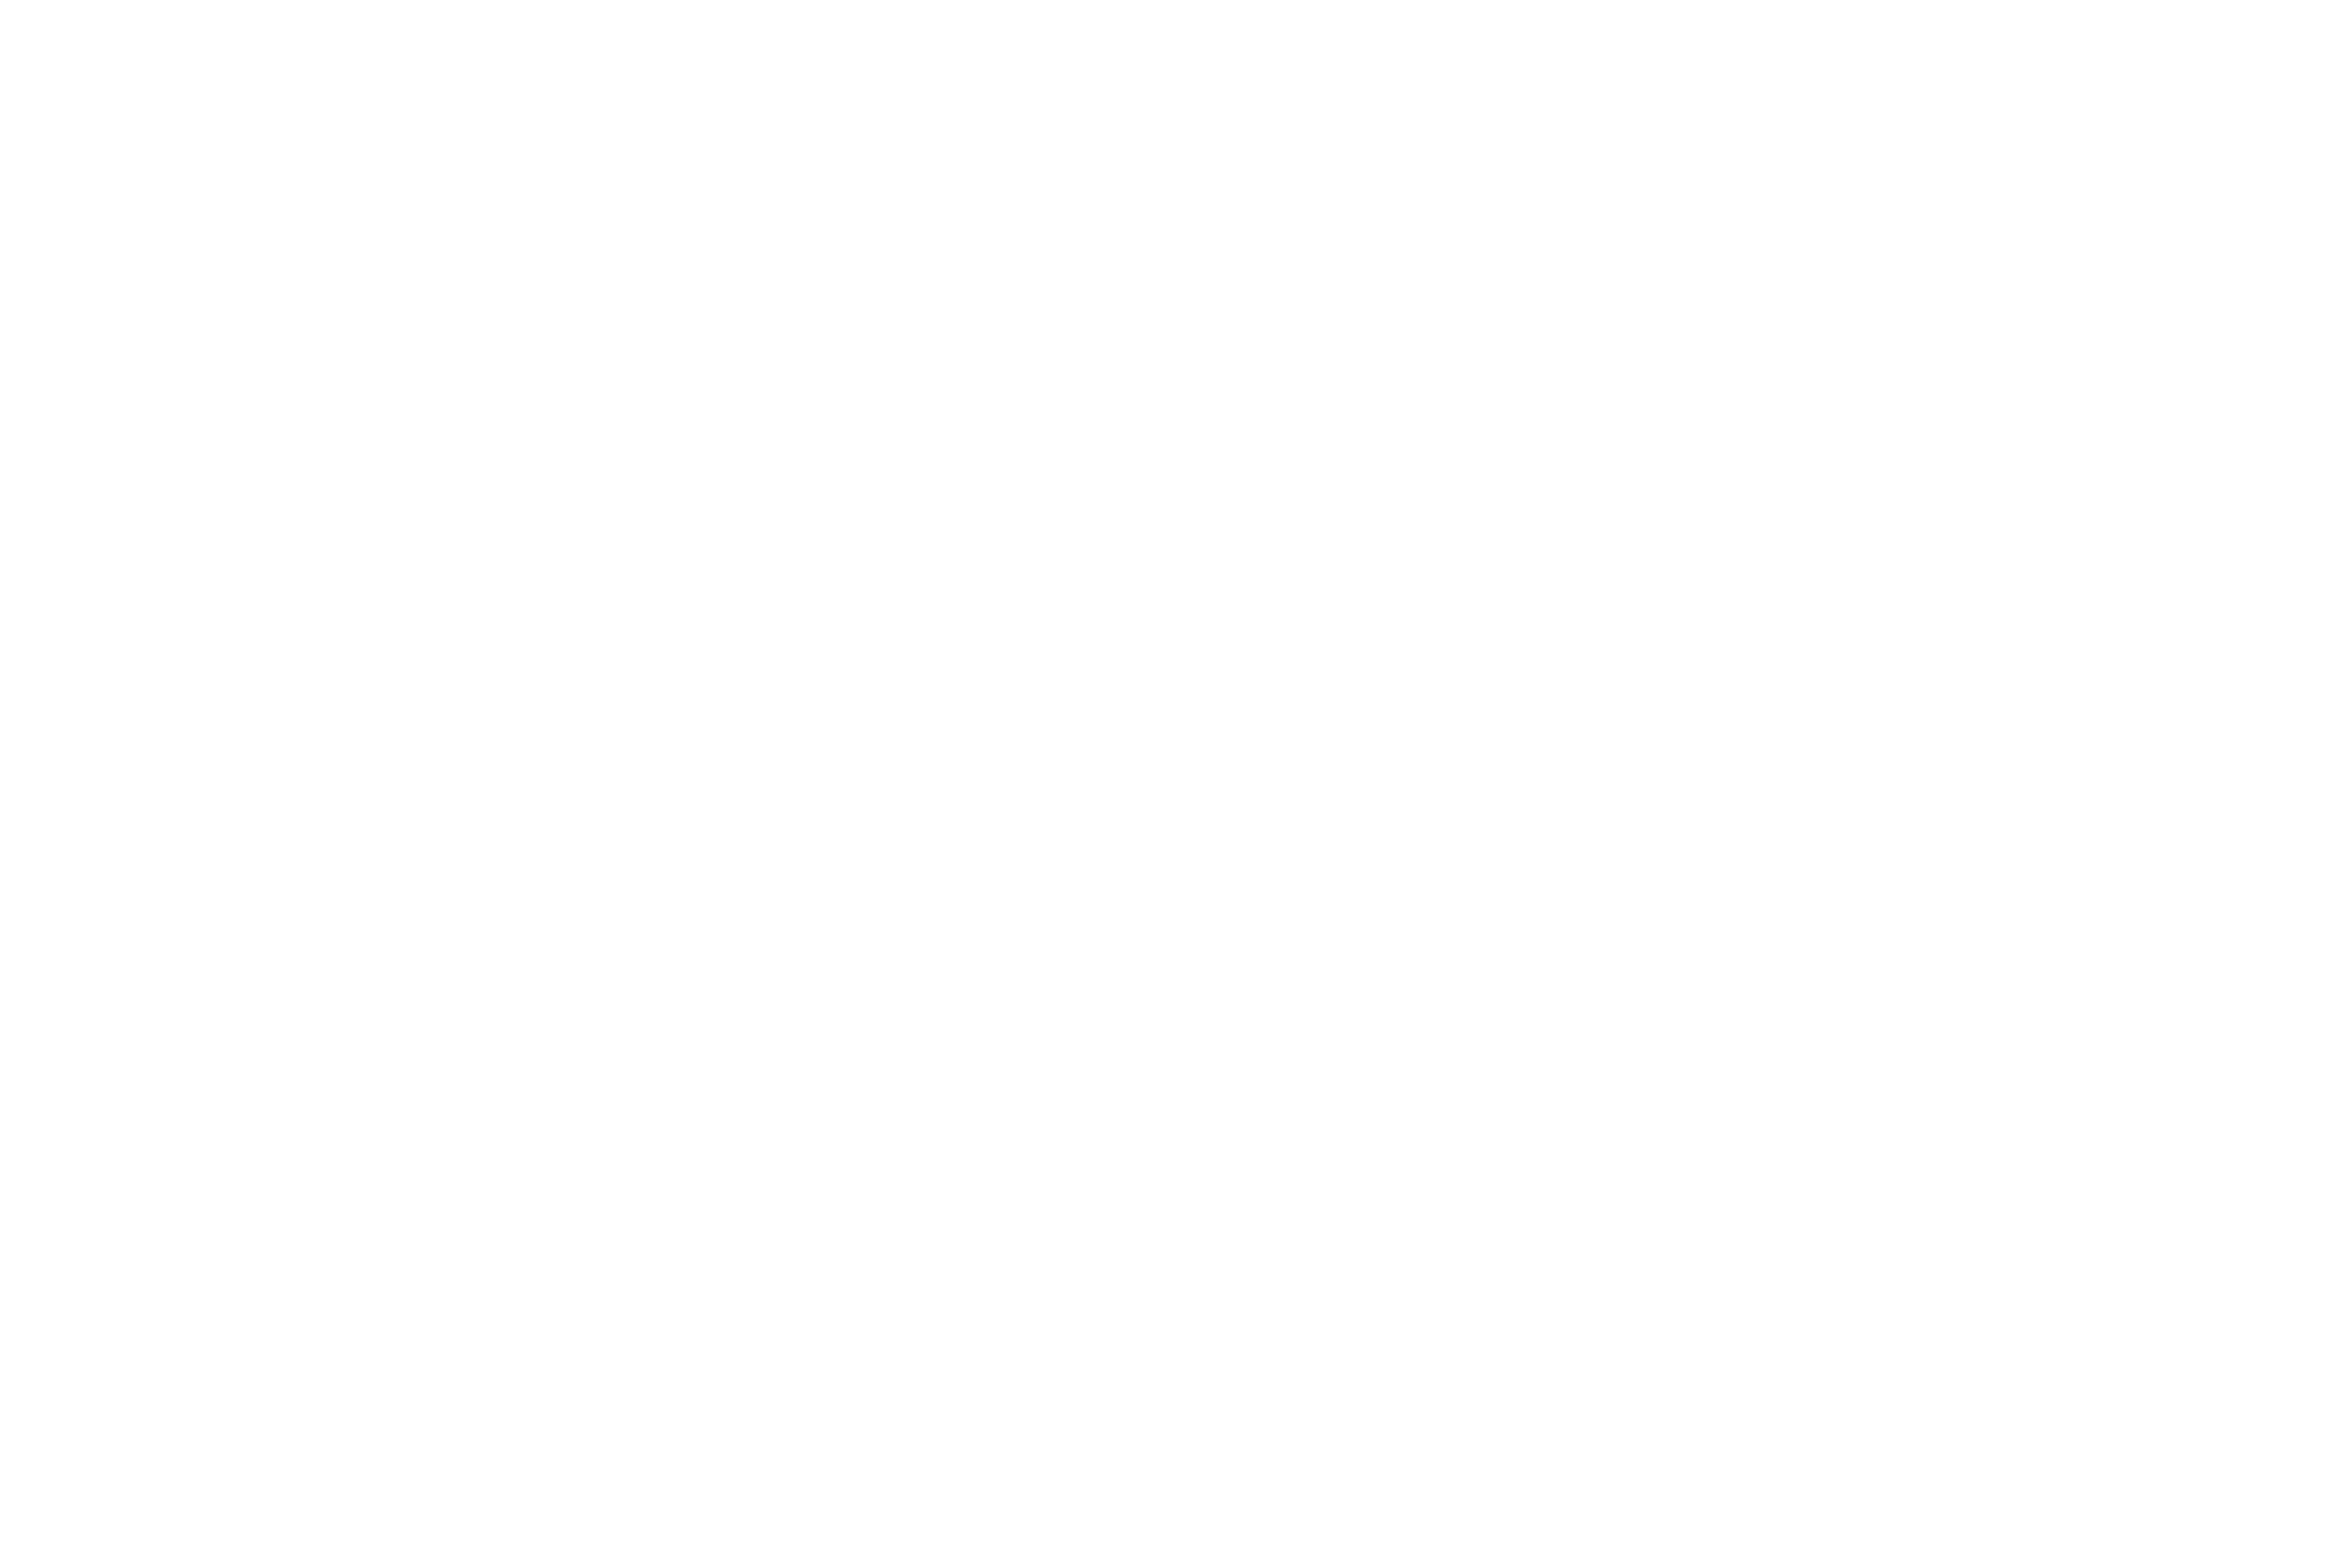 Kevin-Cameron-White-high-res.png